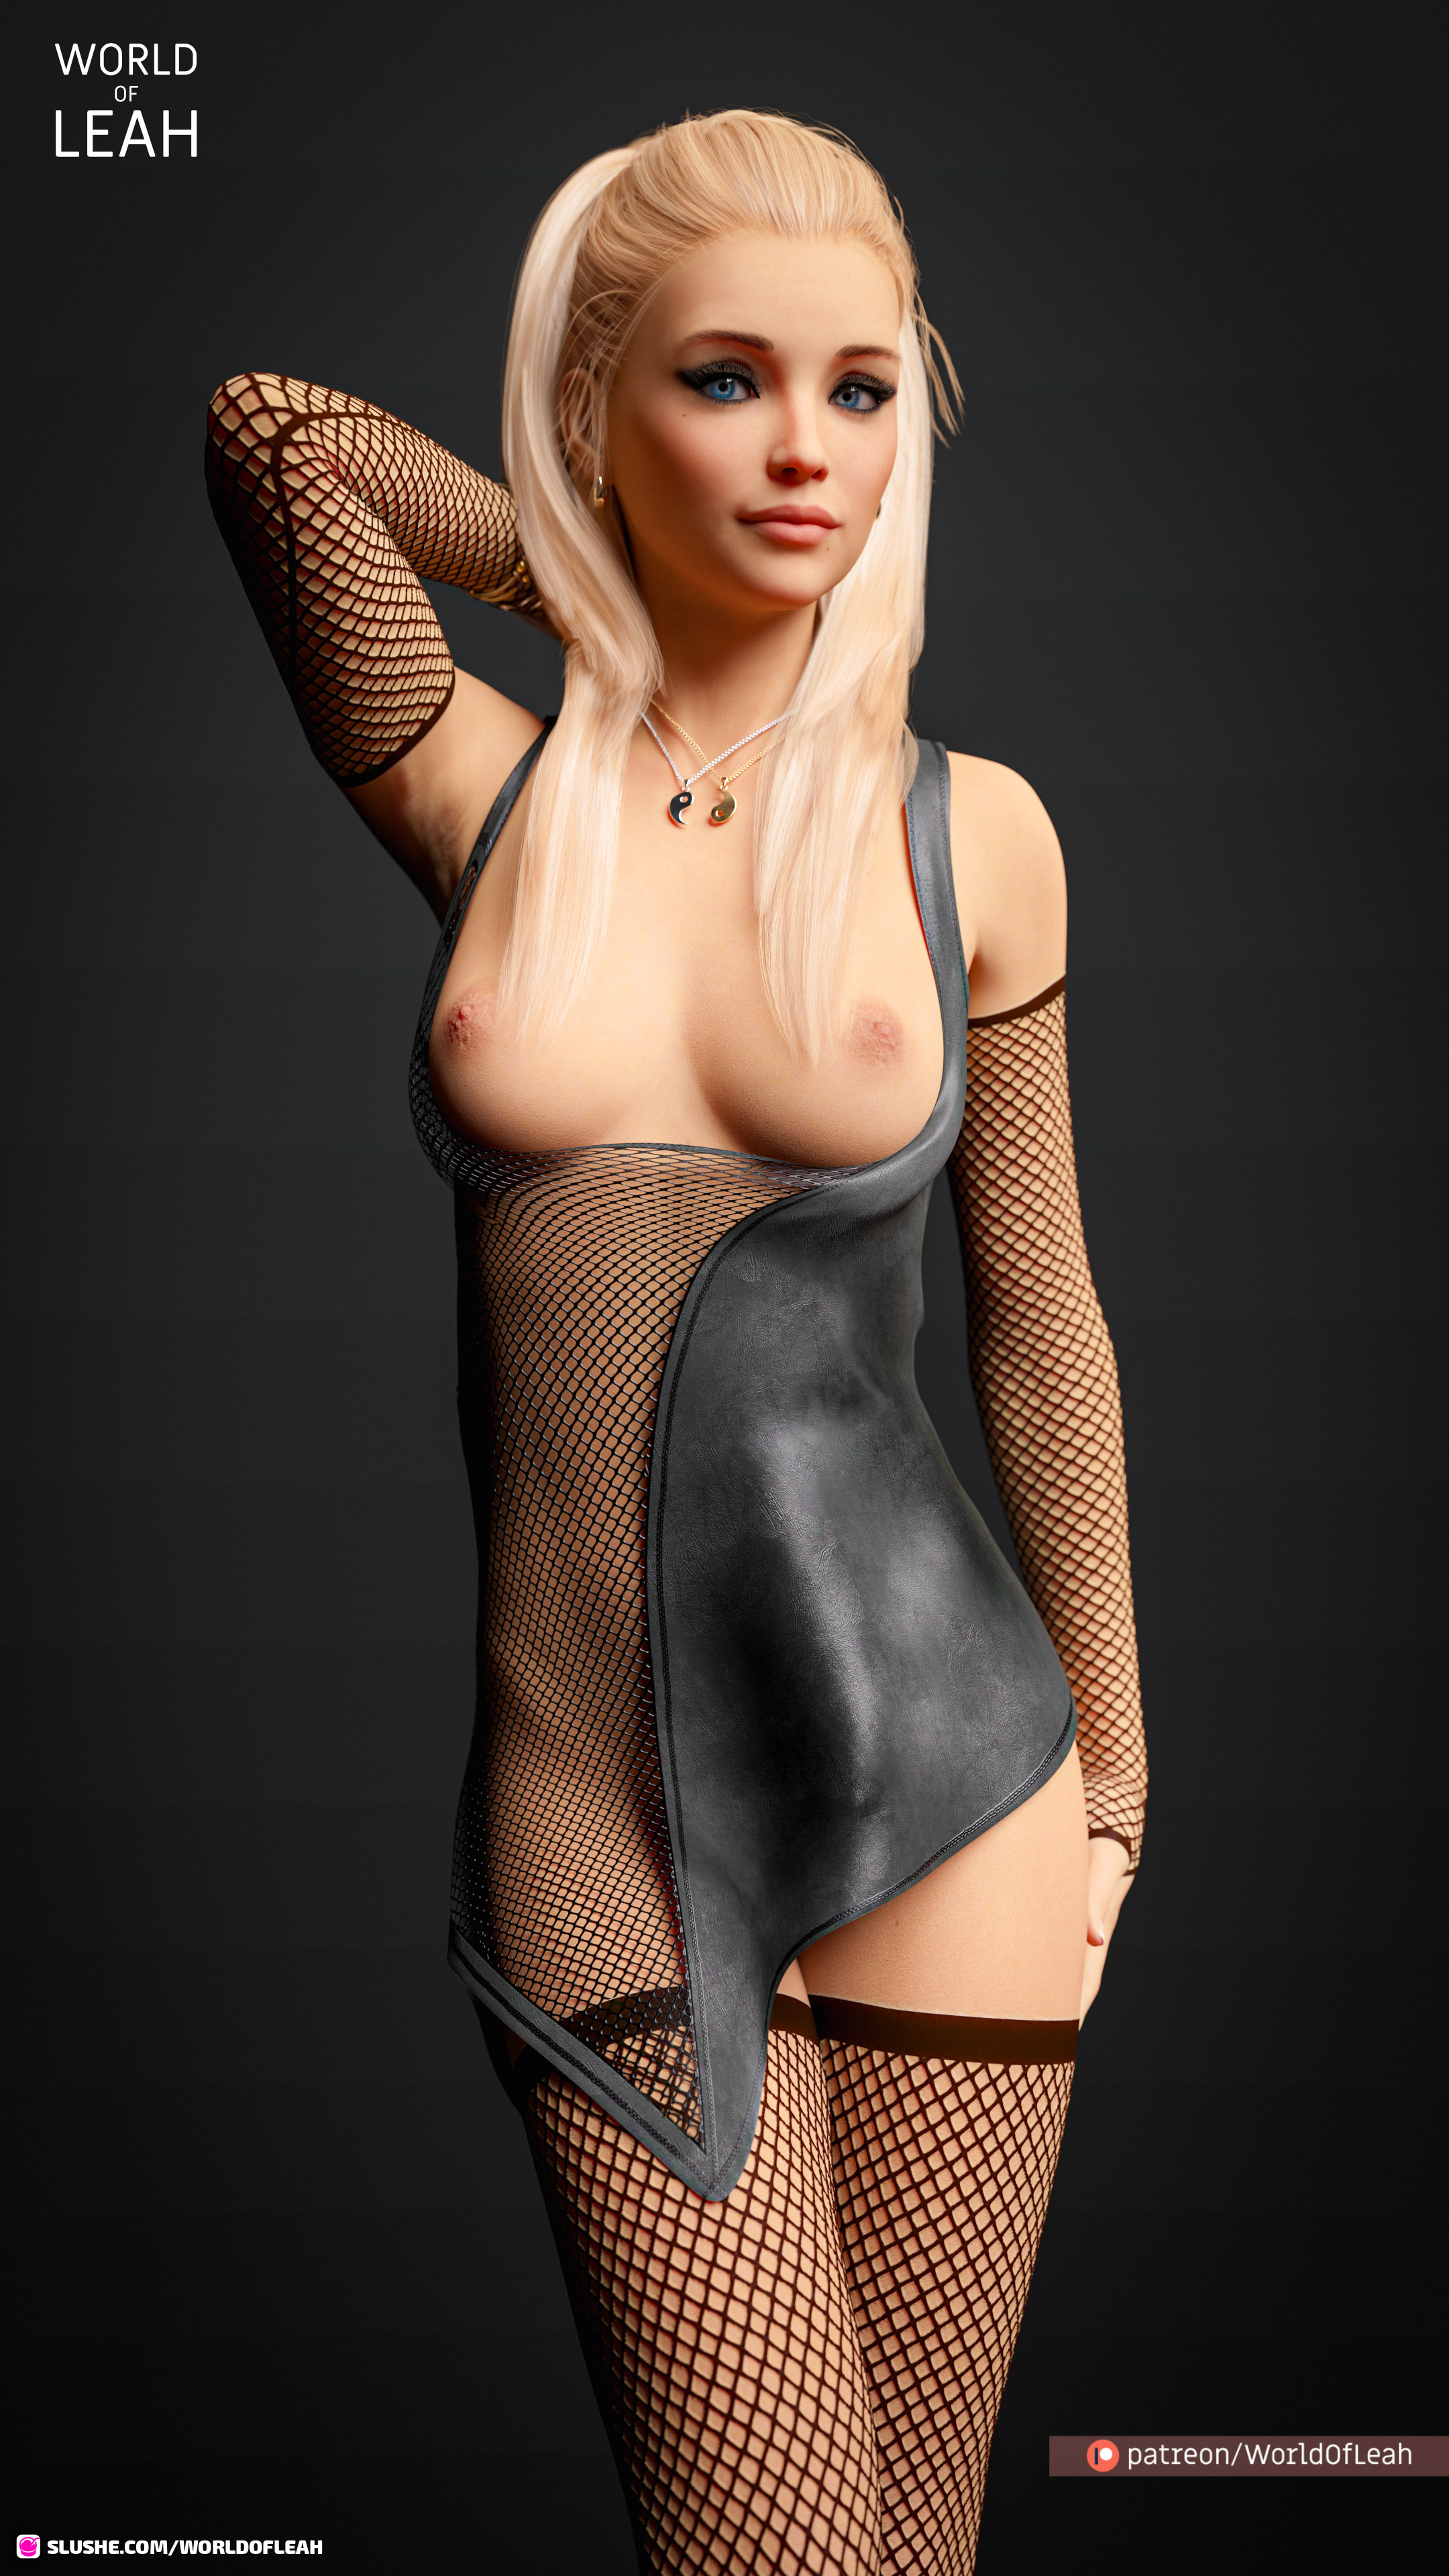 Allison in some sexy leather & net lingerie